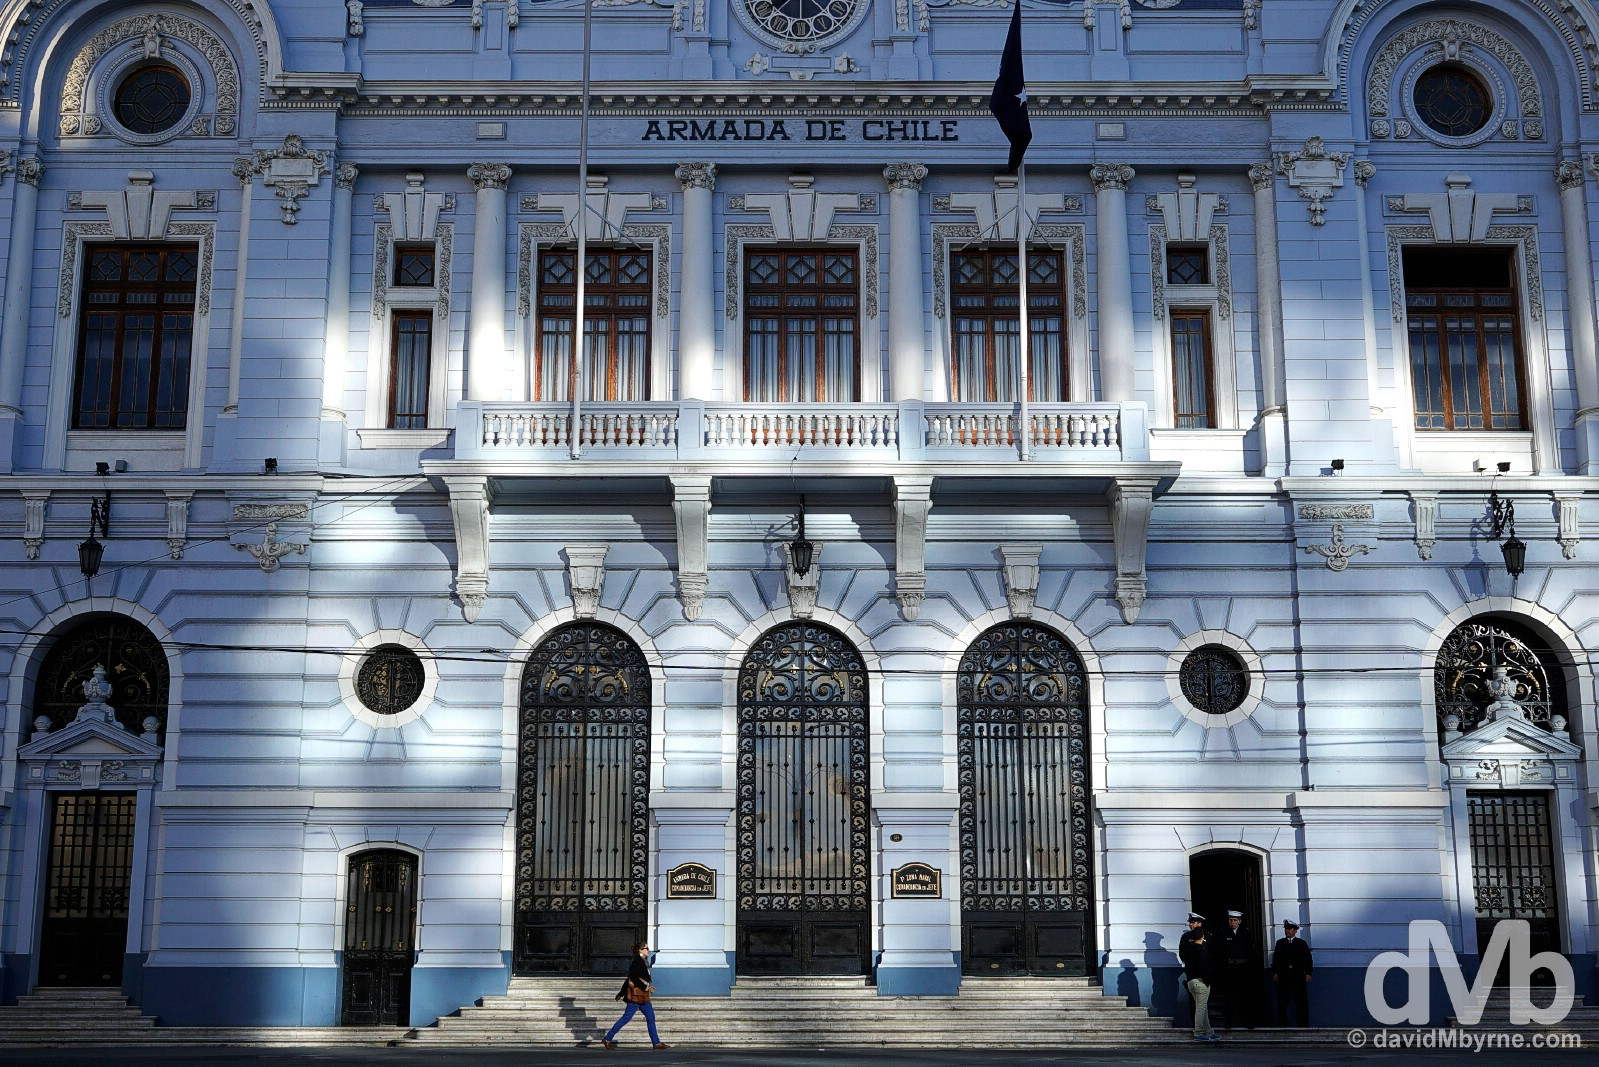 The Armada de Chile building on Plaza Sotomayor in Valparaiso, Chile. October 7, 2015.